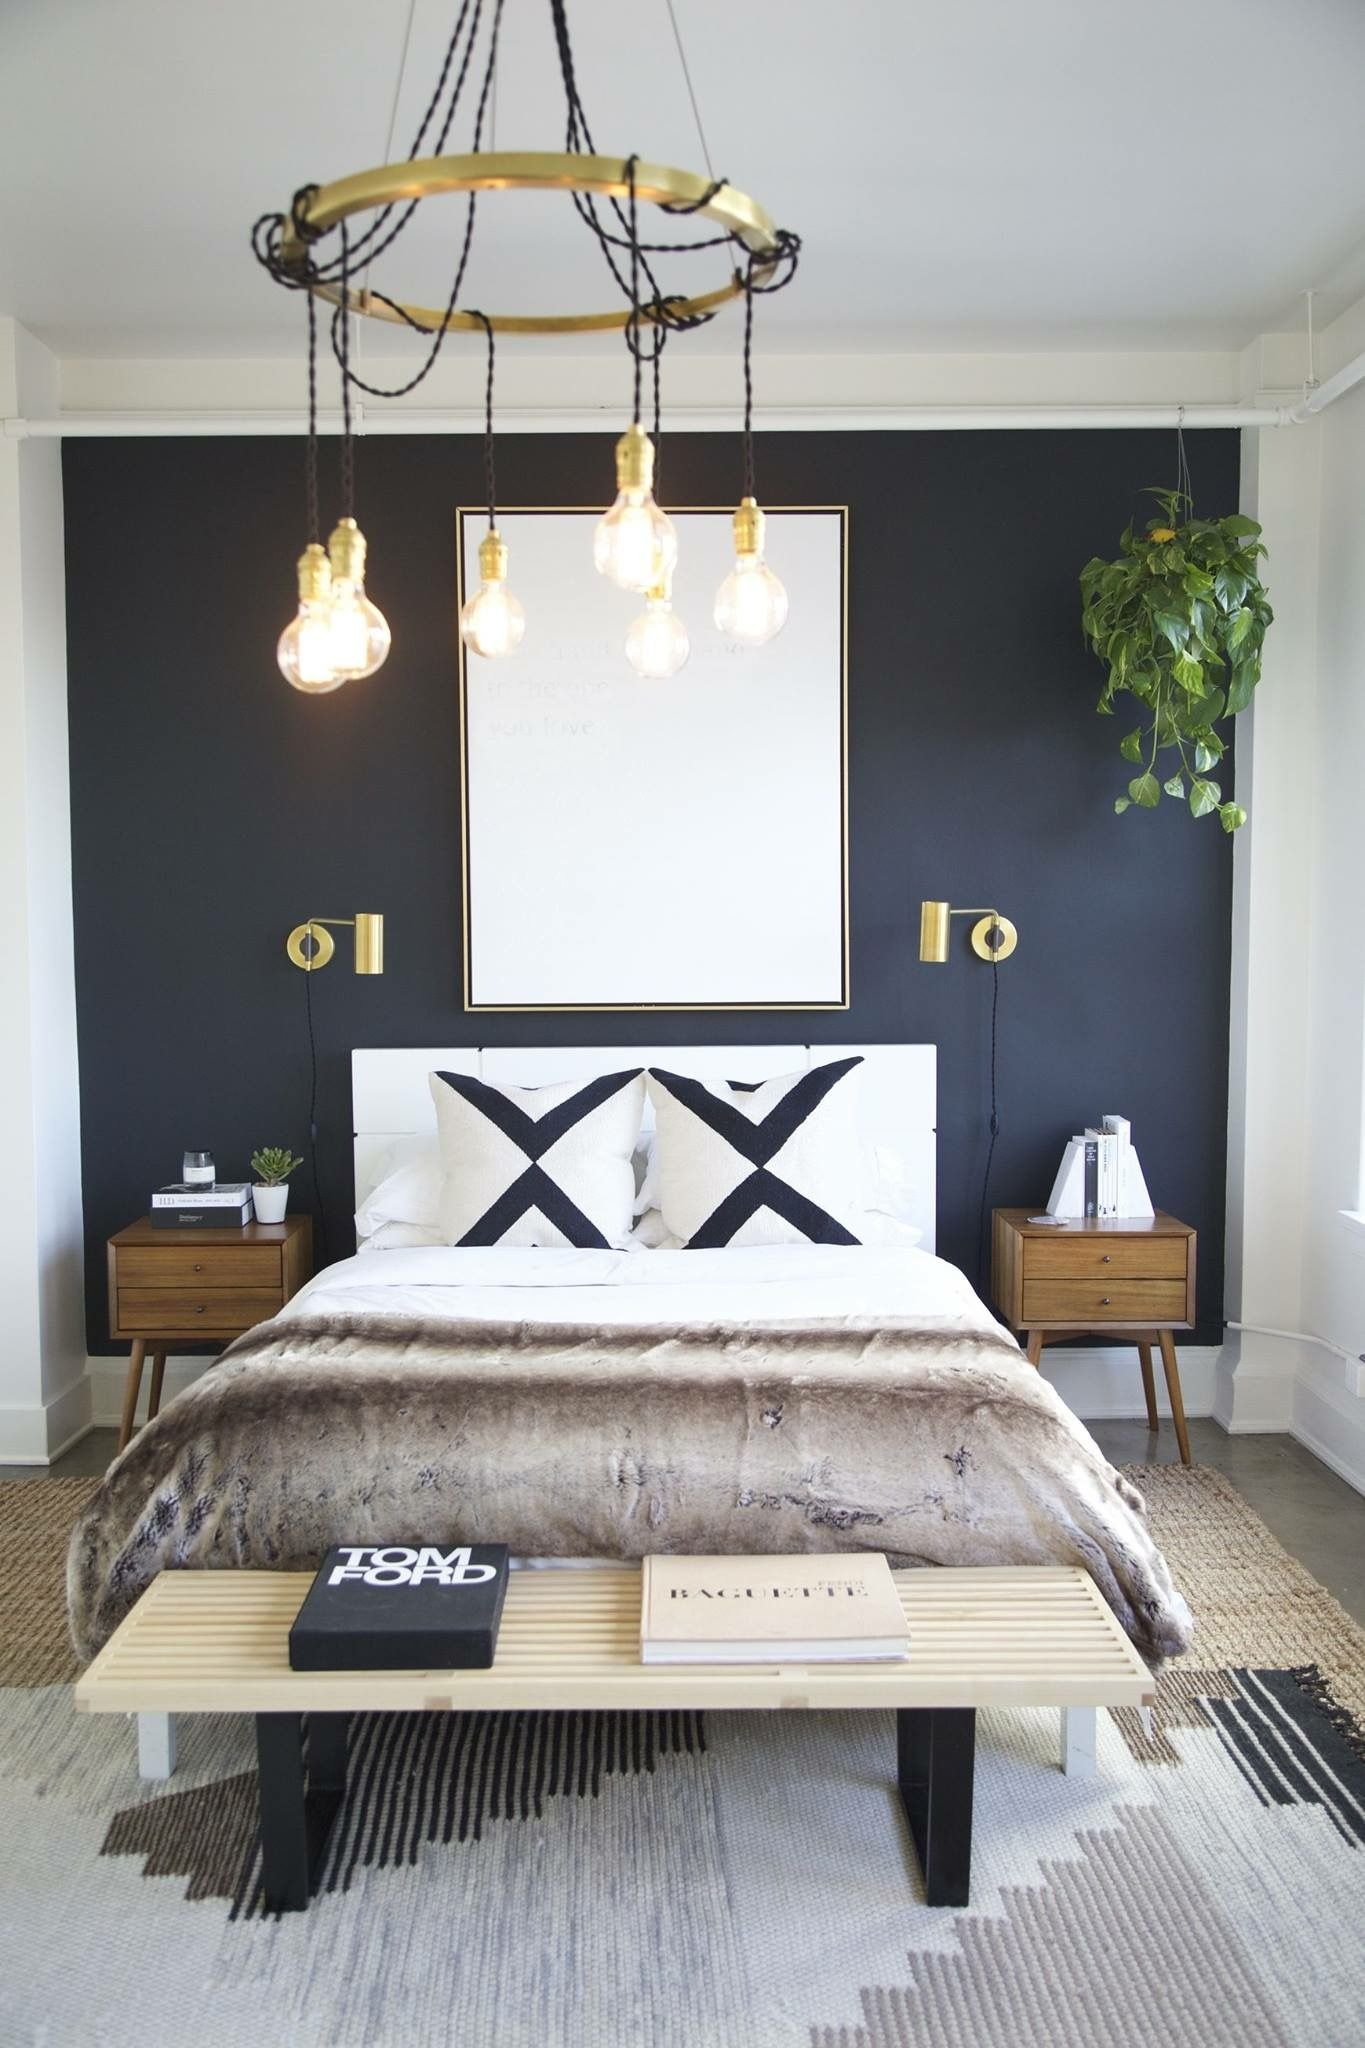 3 Room Hdb Accent Wall: Dark Blue Accent Wall, Graphic Throw Pillows And A